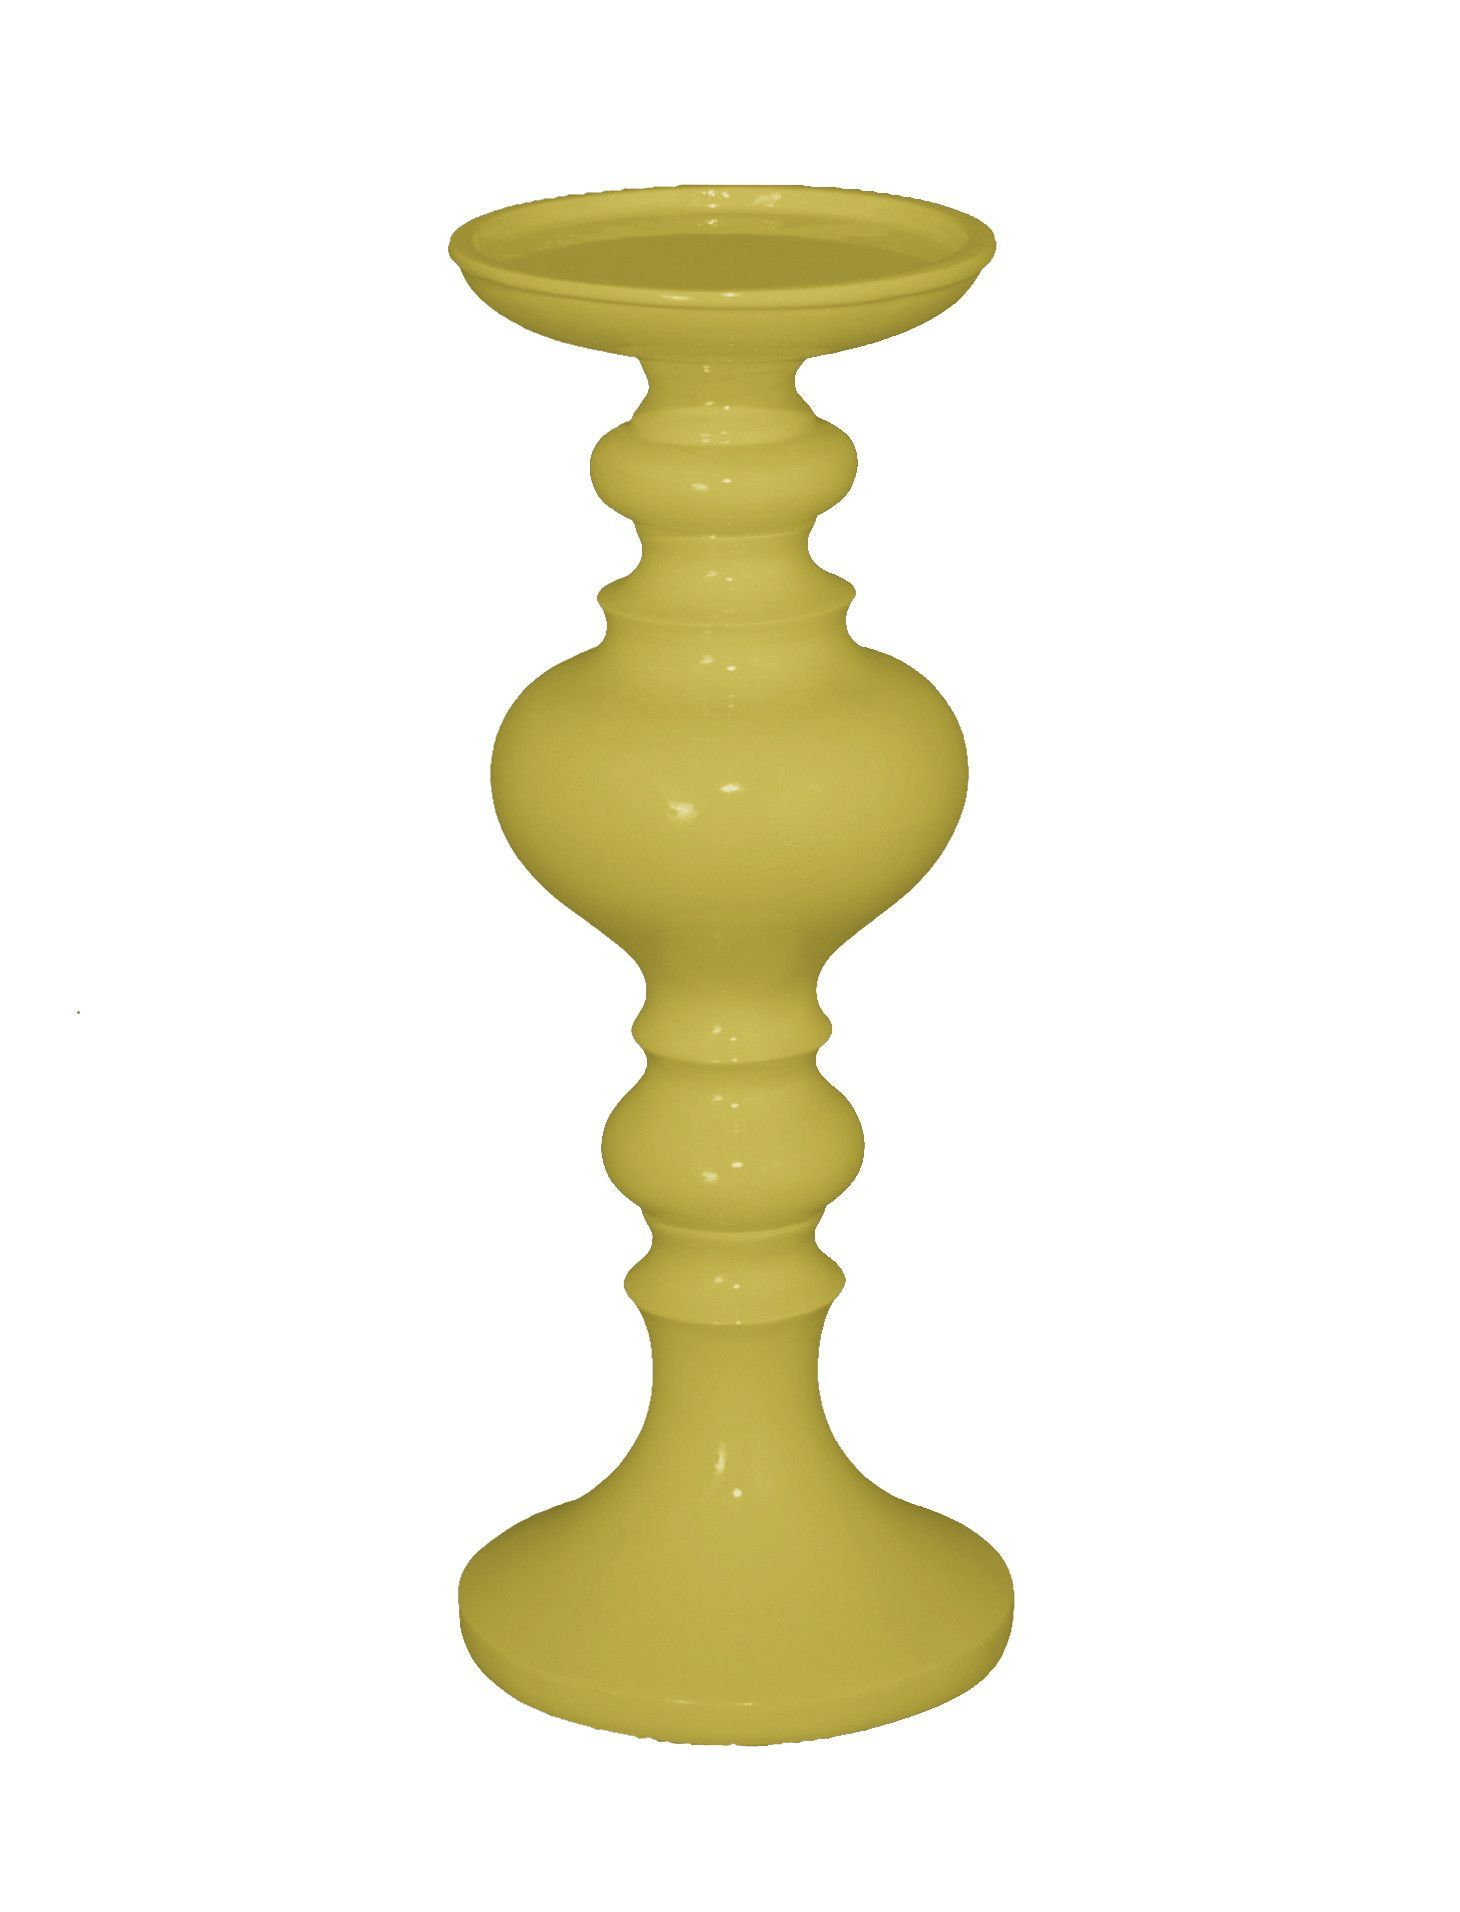 Fabulous yellow resin small candle holder подсвечники pinterest